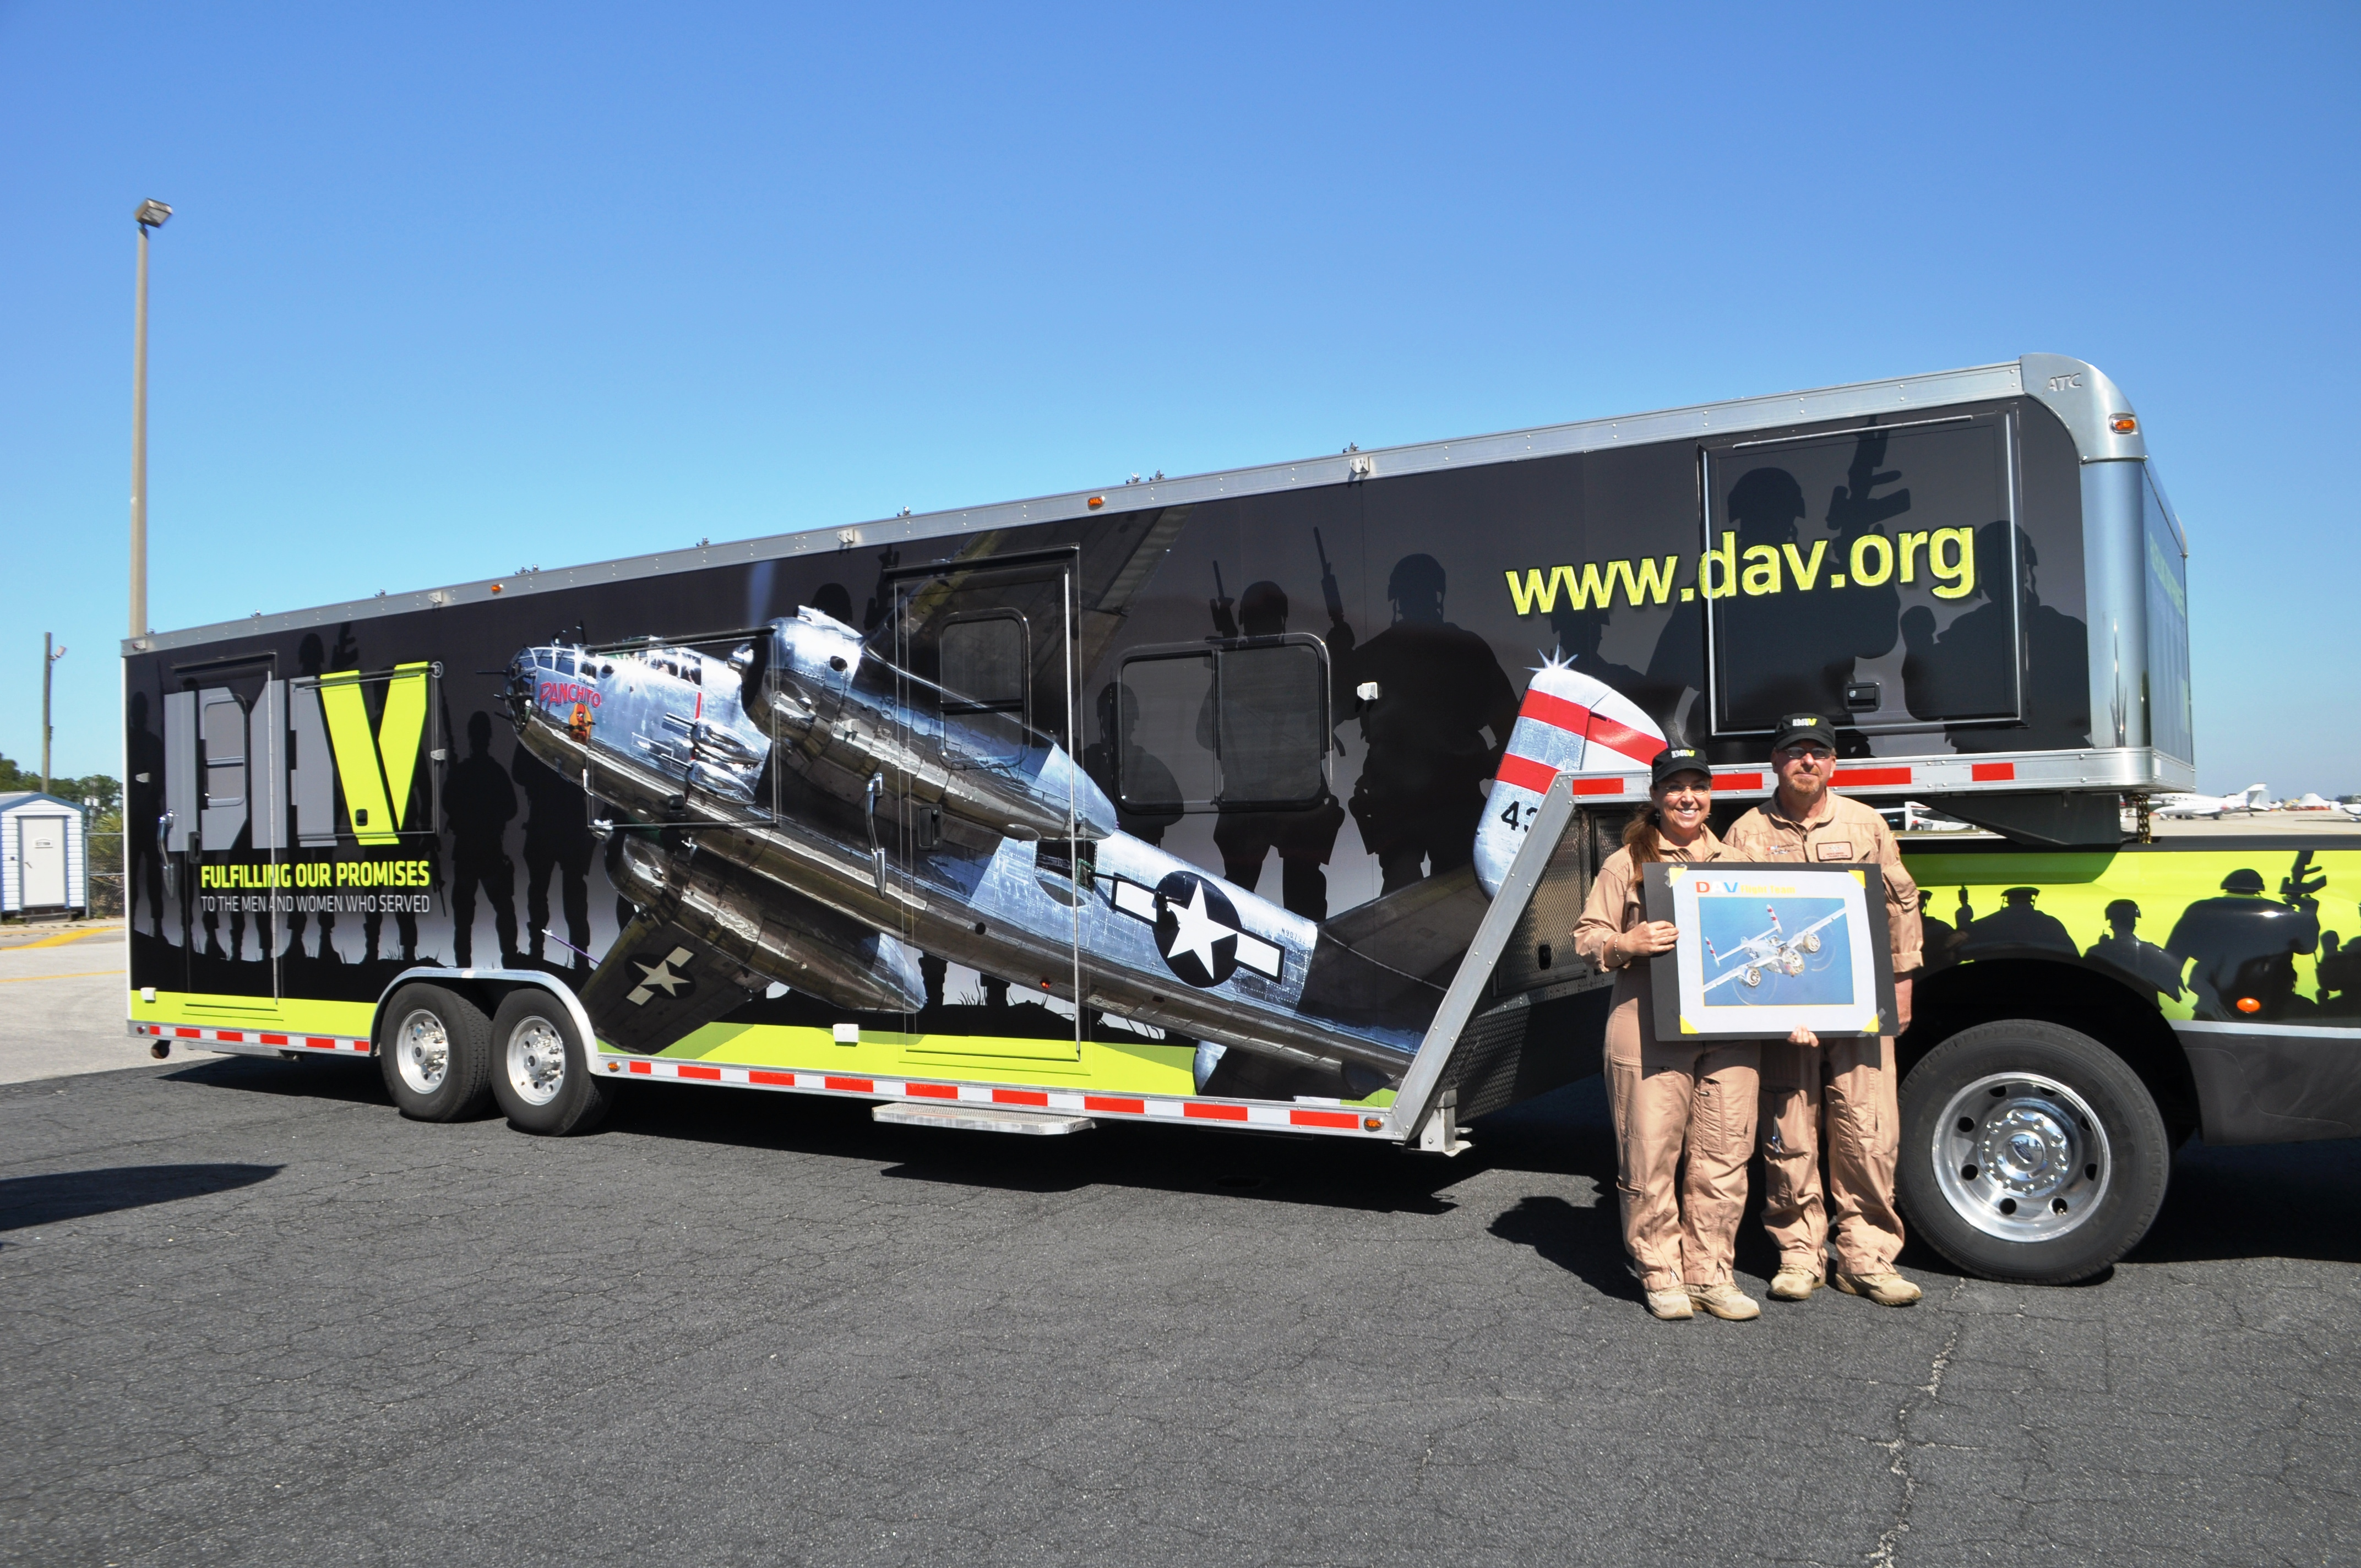 Learn About the Good DAV is Doing for Our Veterans